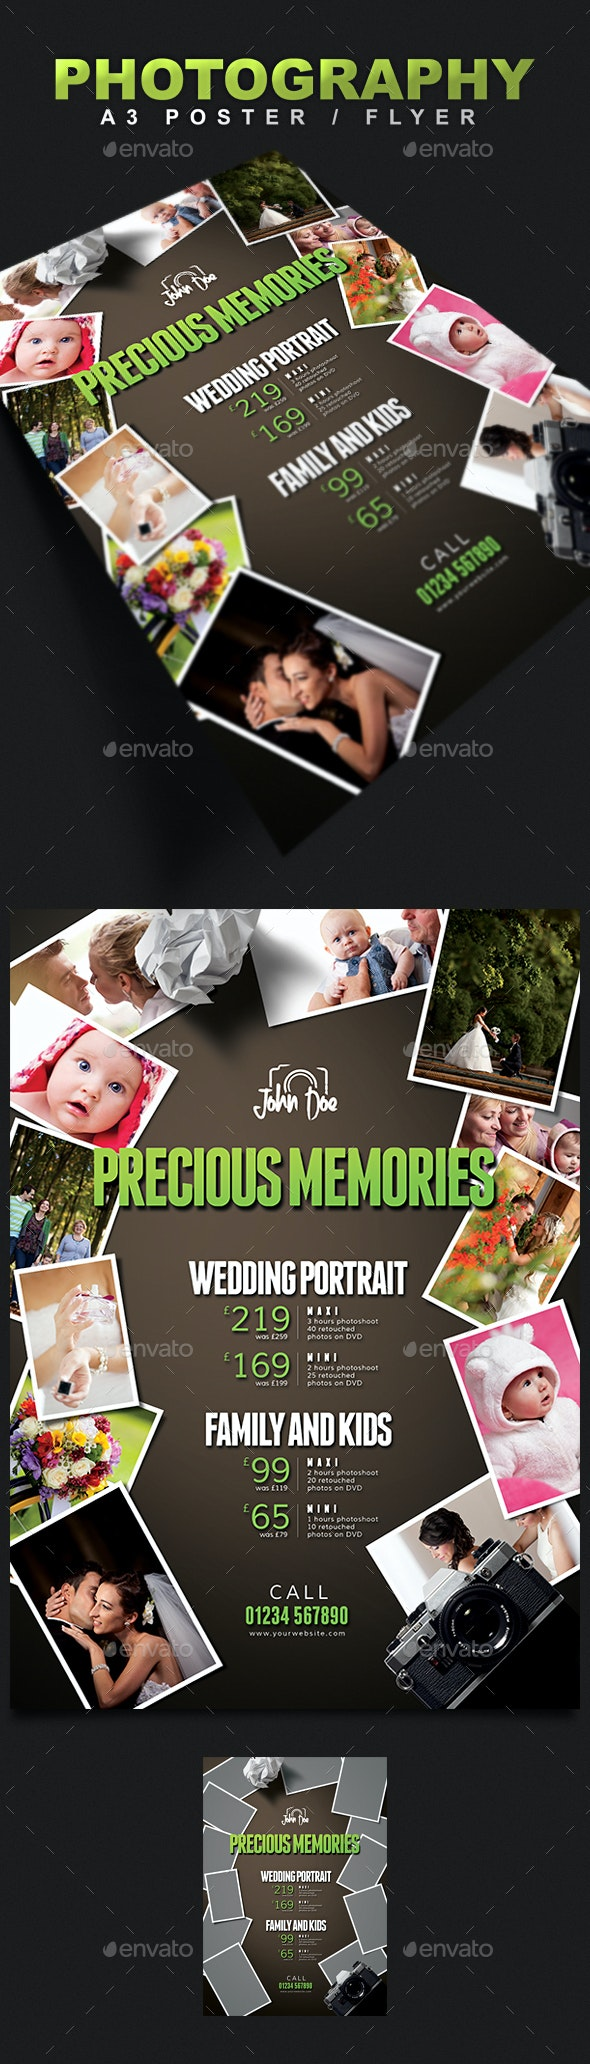 A3 Photography Poster / Flyer - Corporate Flyers